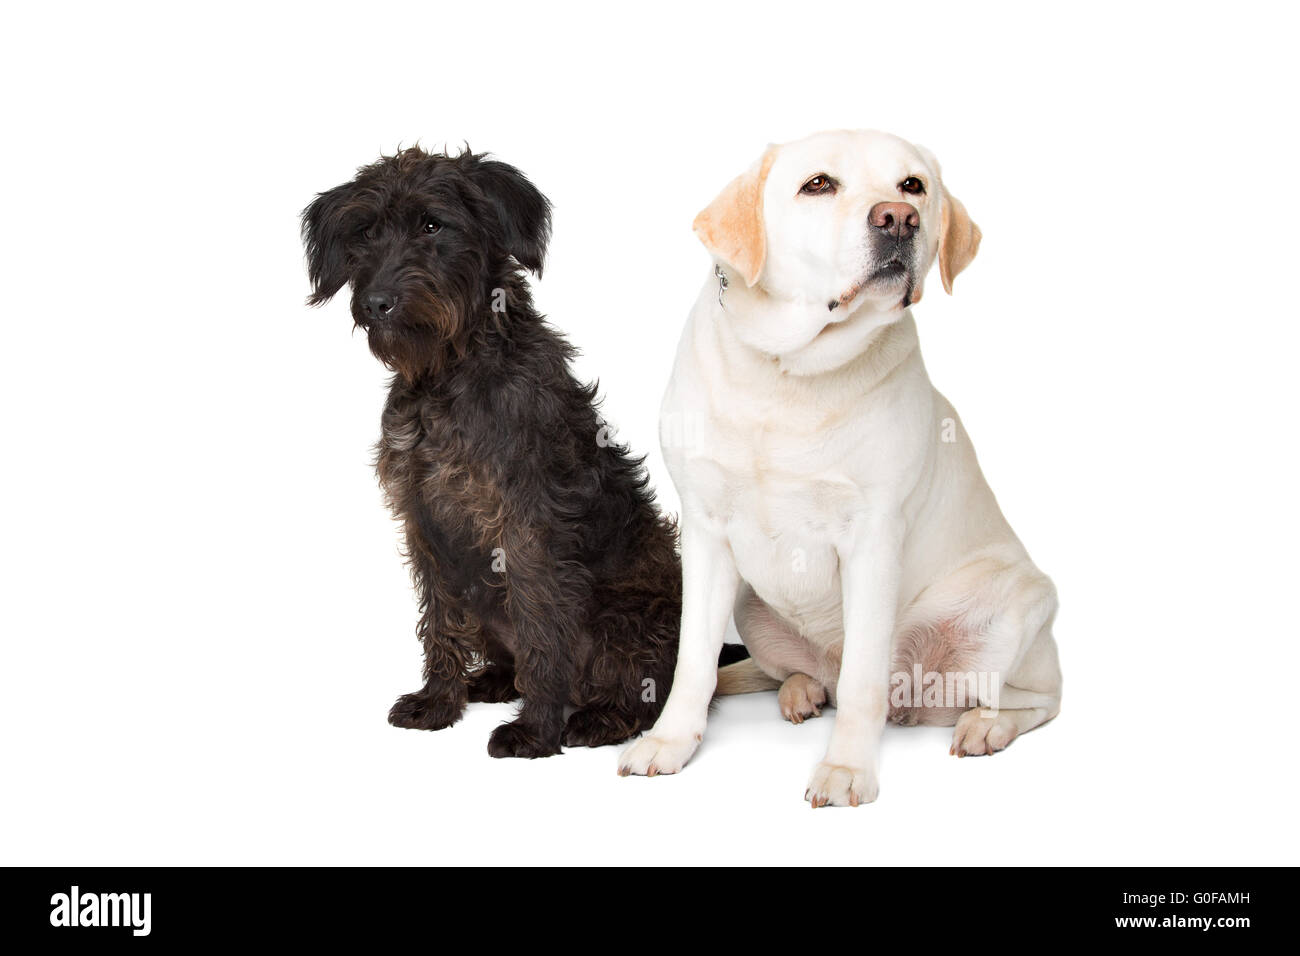 Labrador and a black fluffy dog - Stock Image